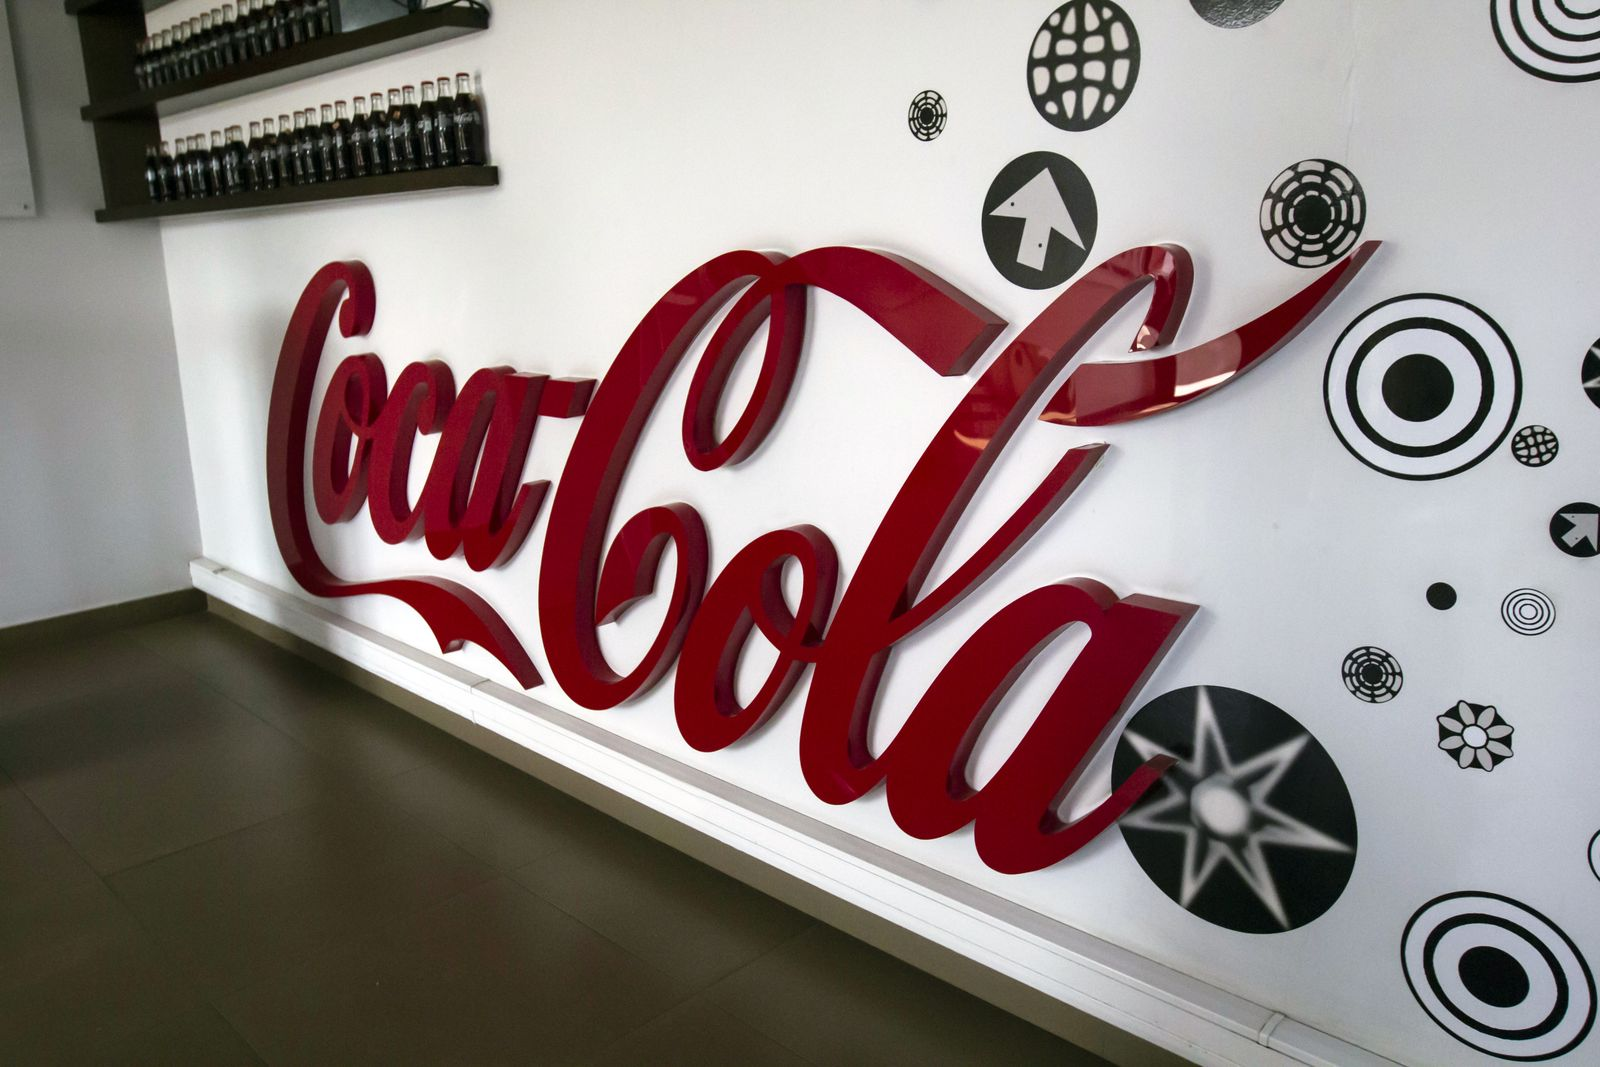 Coca-Cola 3d acrylic letters fixed to the wall with direct mounting for interior branding